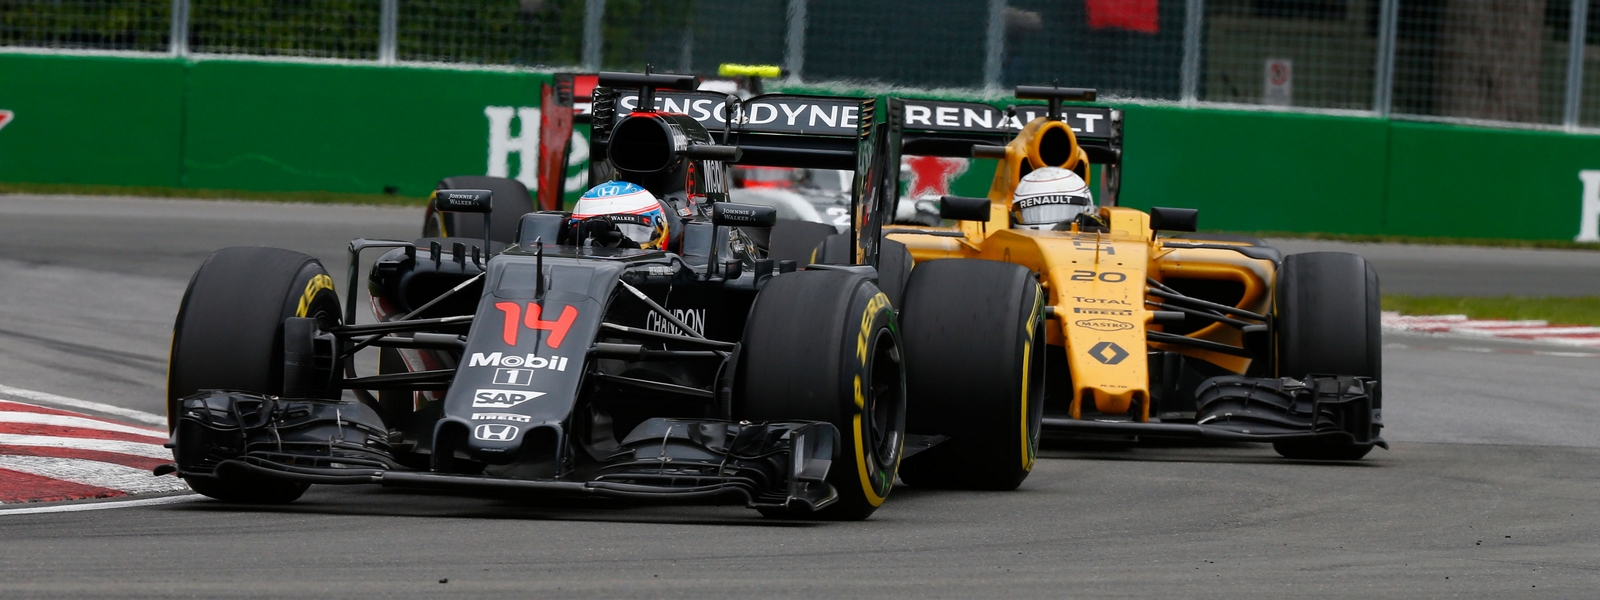 Motorsports: FIA Formula One World Championship 2016, Grand Prix of Canada, #14 Fernando Alonso (ESP, McLaren Honda F1 Team), #20 Kevin Magnussen (DEN, Renault Sport F1 Team), *** Local Caption *** +++ www.hoch-zwei.net +++ copyright: HOCH ZWEI +++